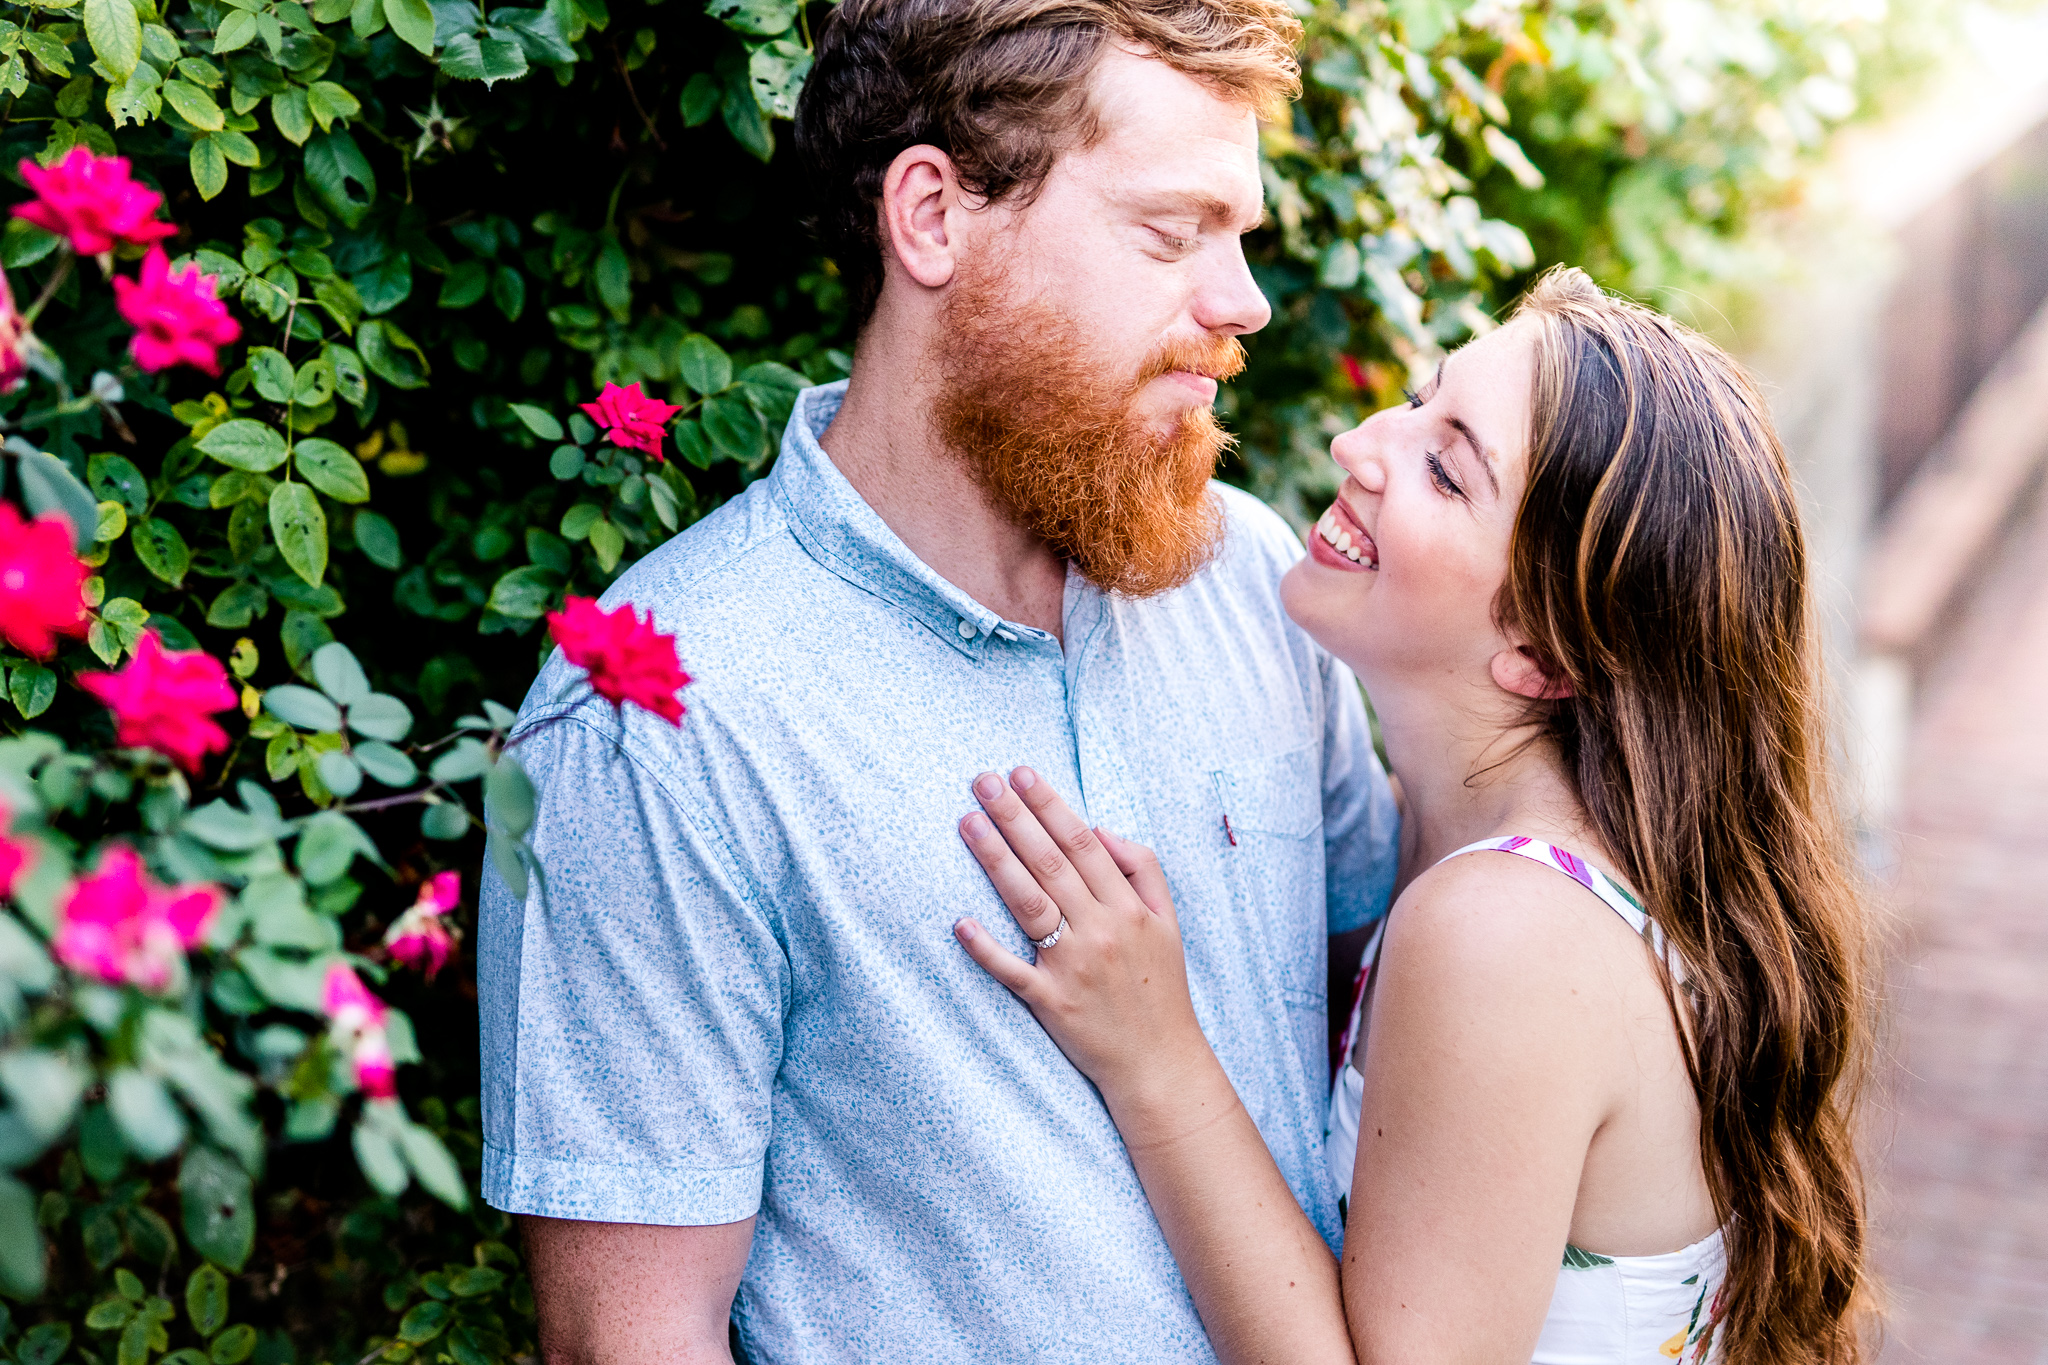 An engaged couple look lovingly at each other next to a rose bush during their summer sunset engagement session in Historic Occoquan, Northern Virginia